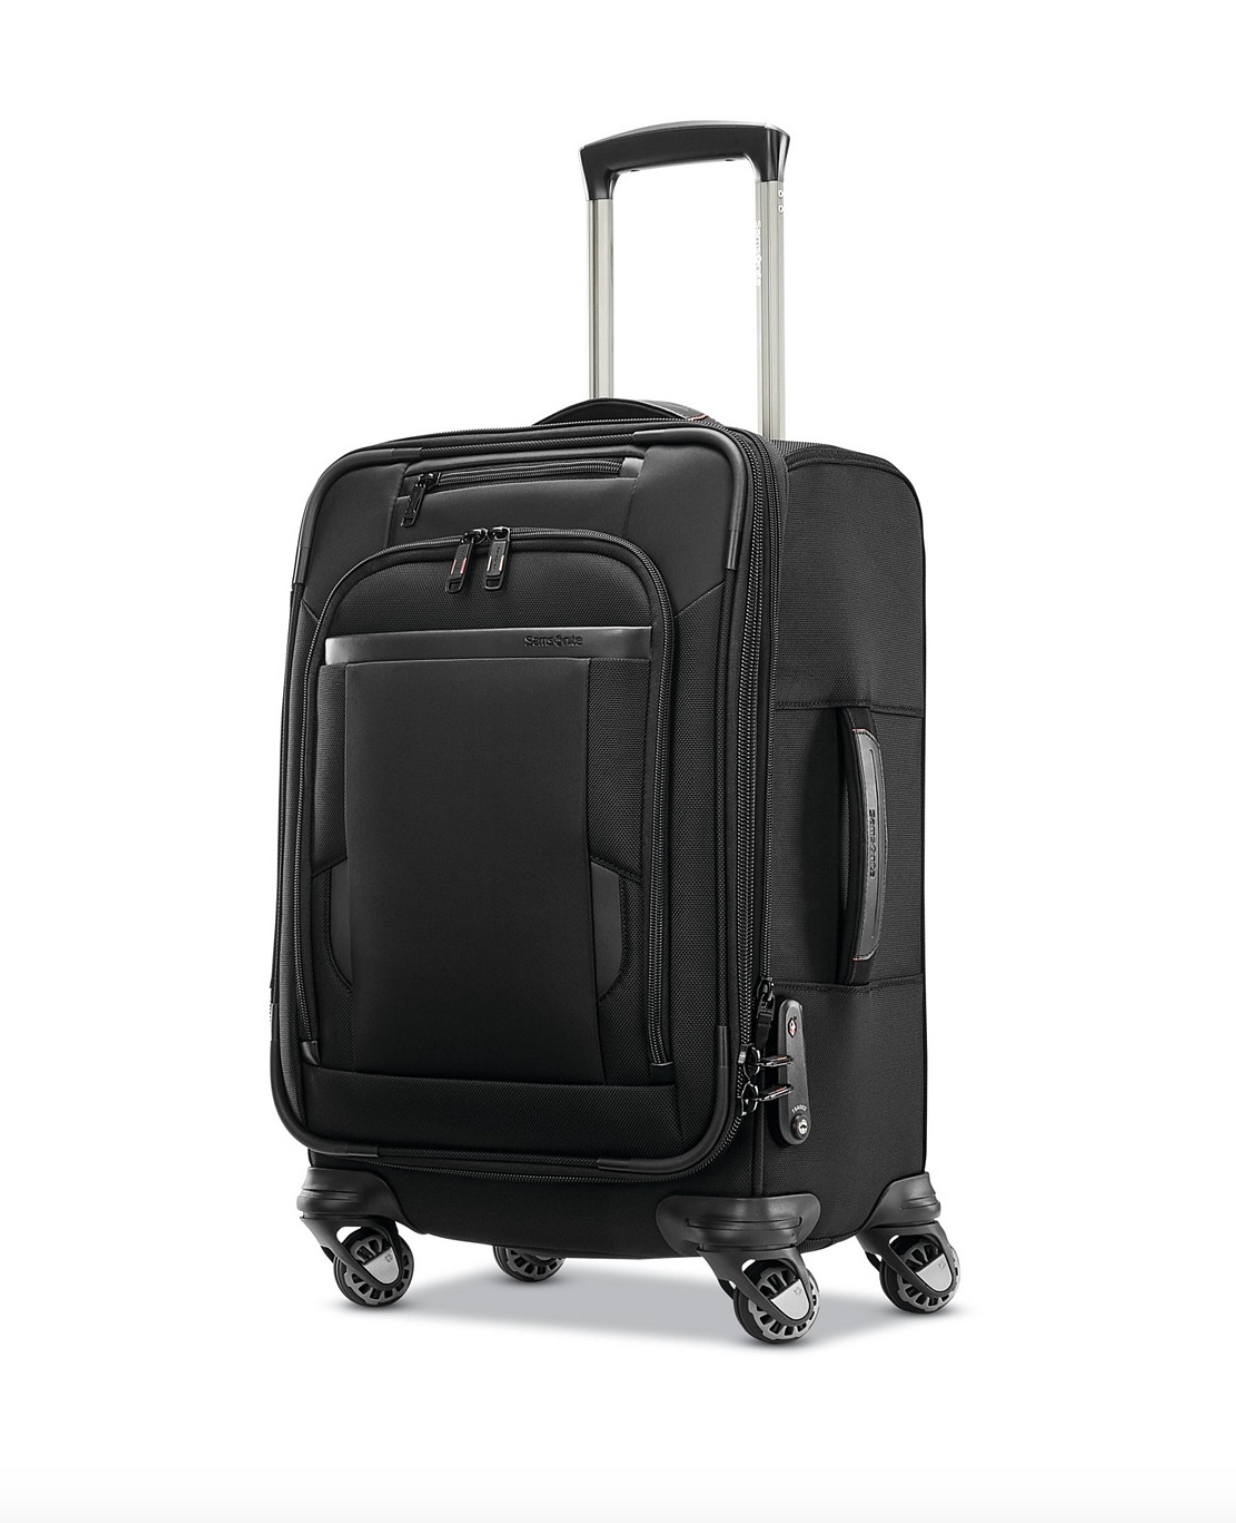 Samsonite Pro Travel carry-on expandable spinner